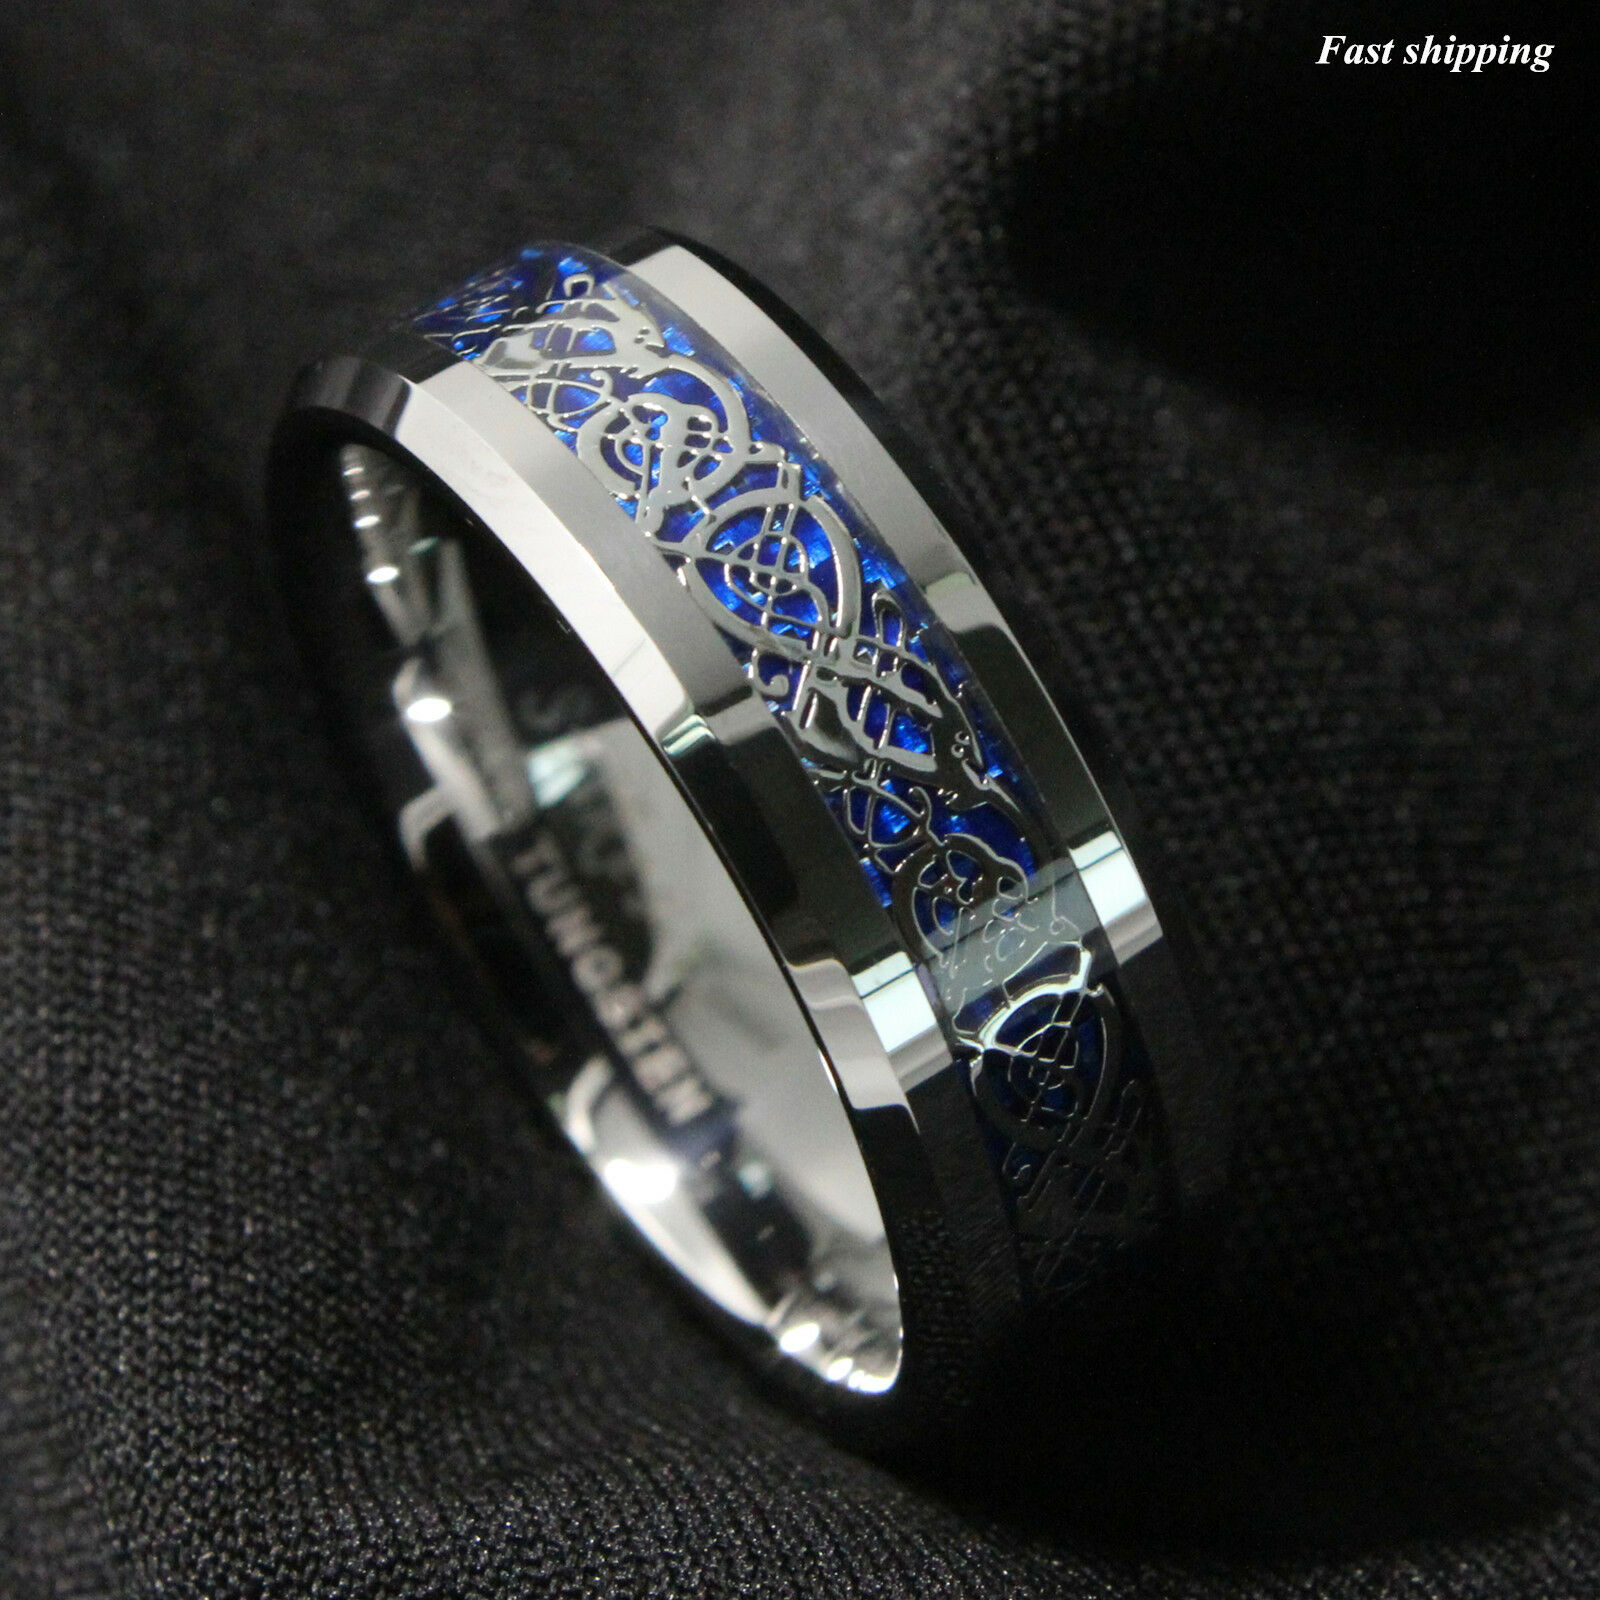 8mm silvering celtic dragon tungsten carbide ring mens jewelry wedding band